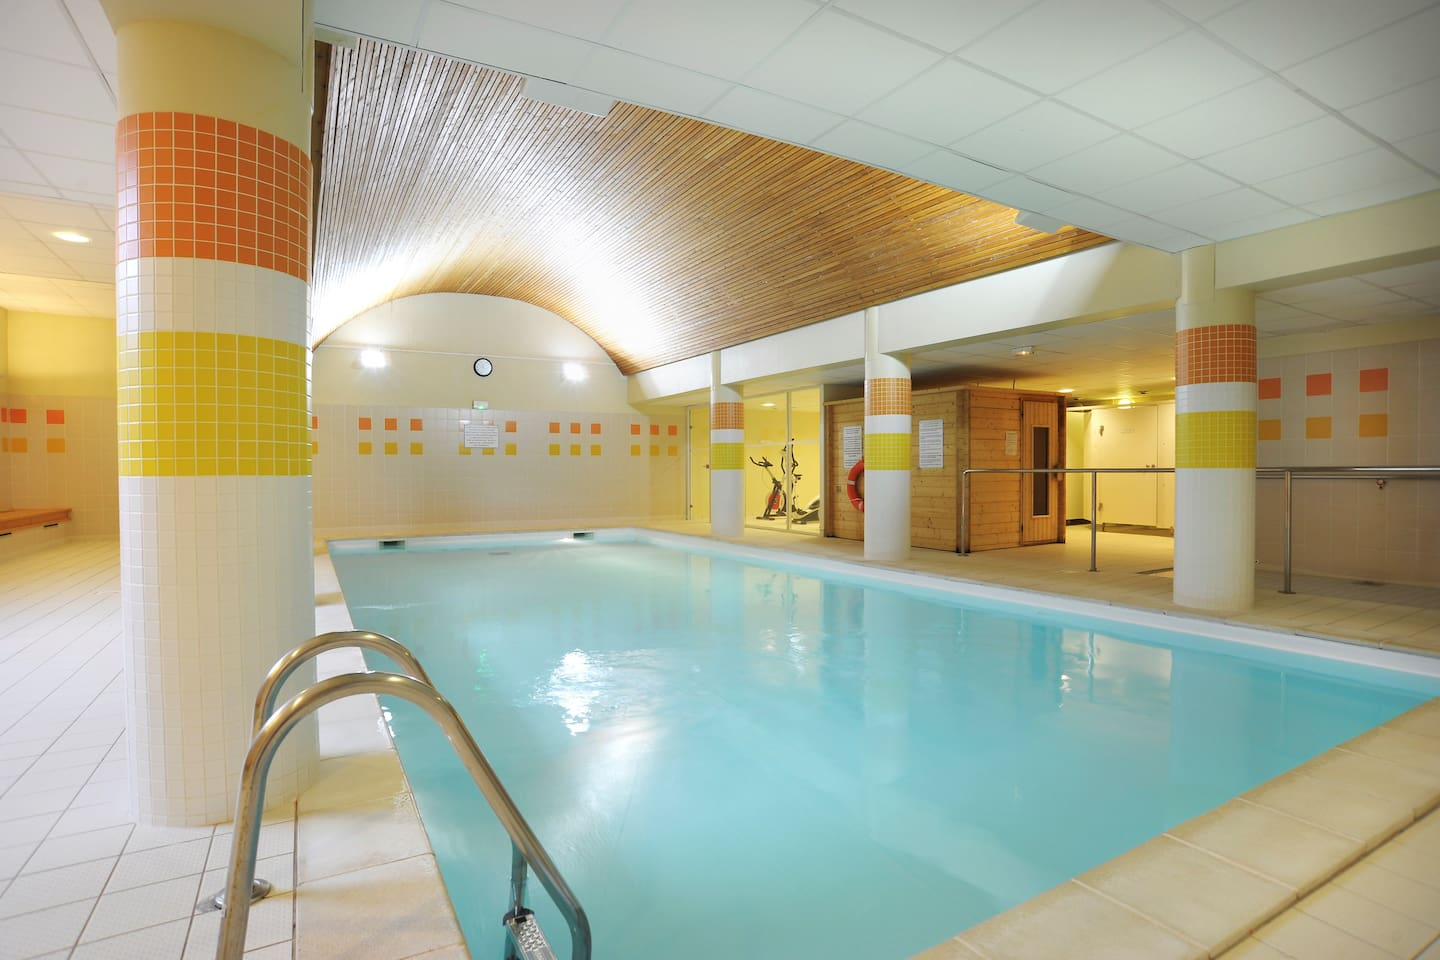 Dive into the indoor pool after a wonderful day outside.